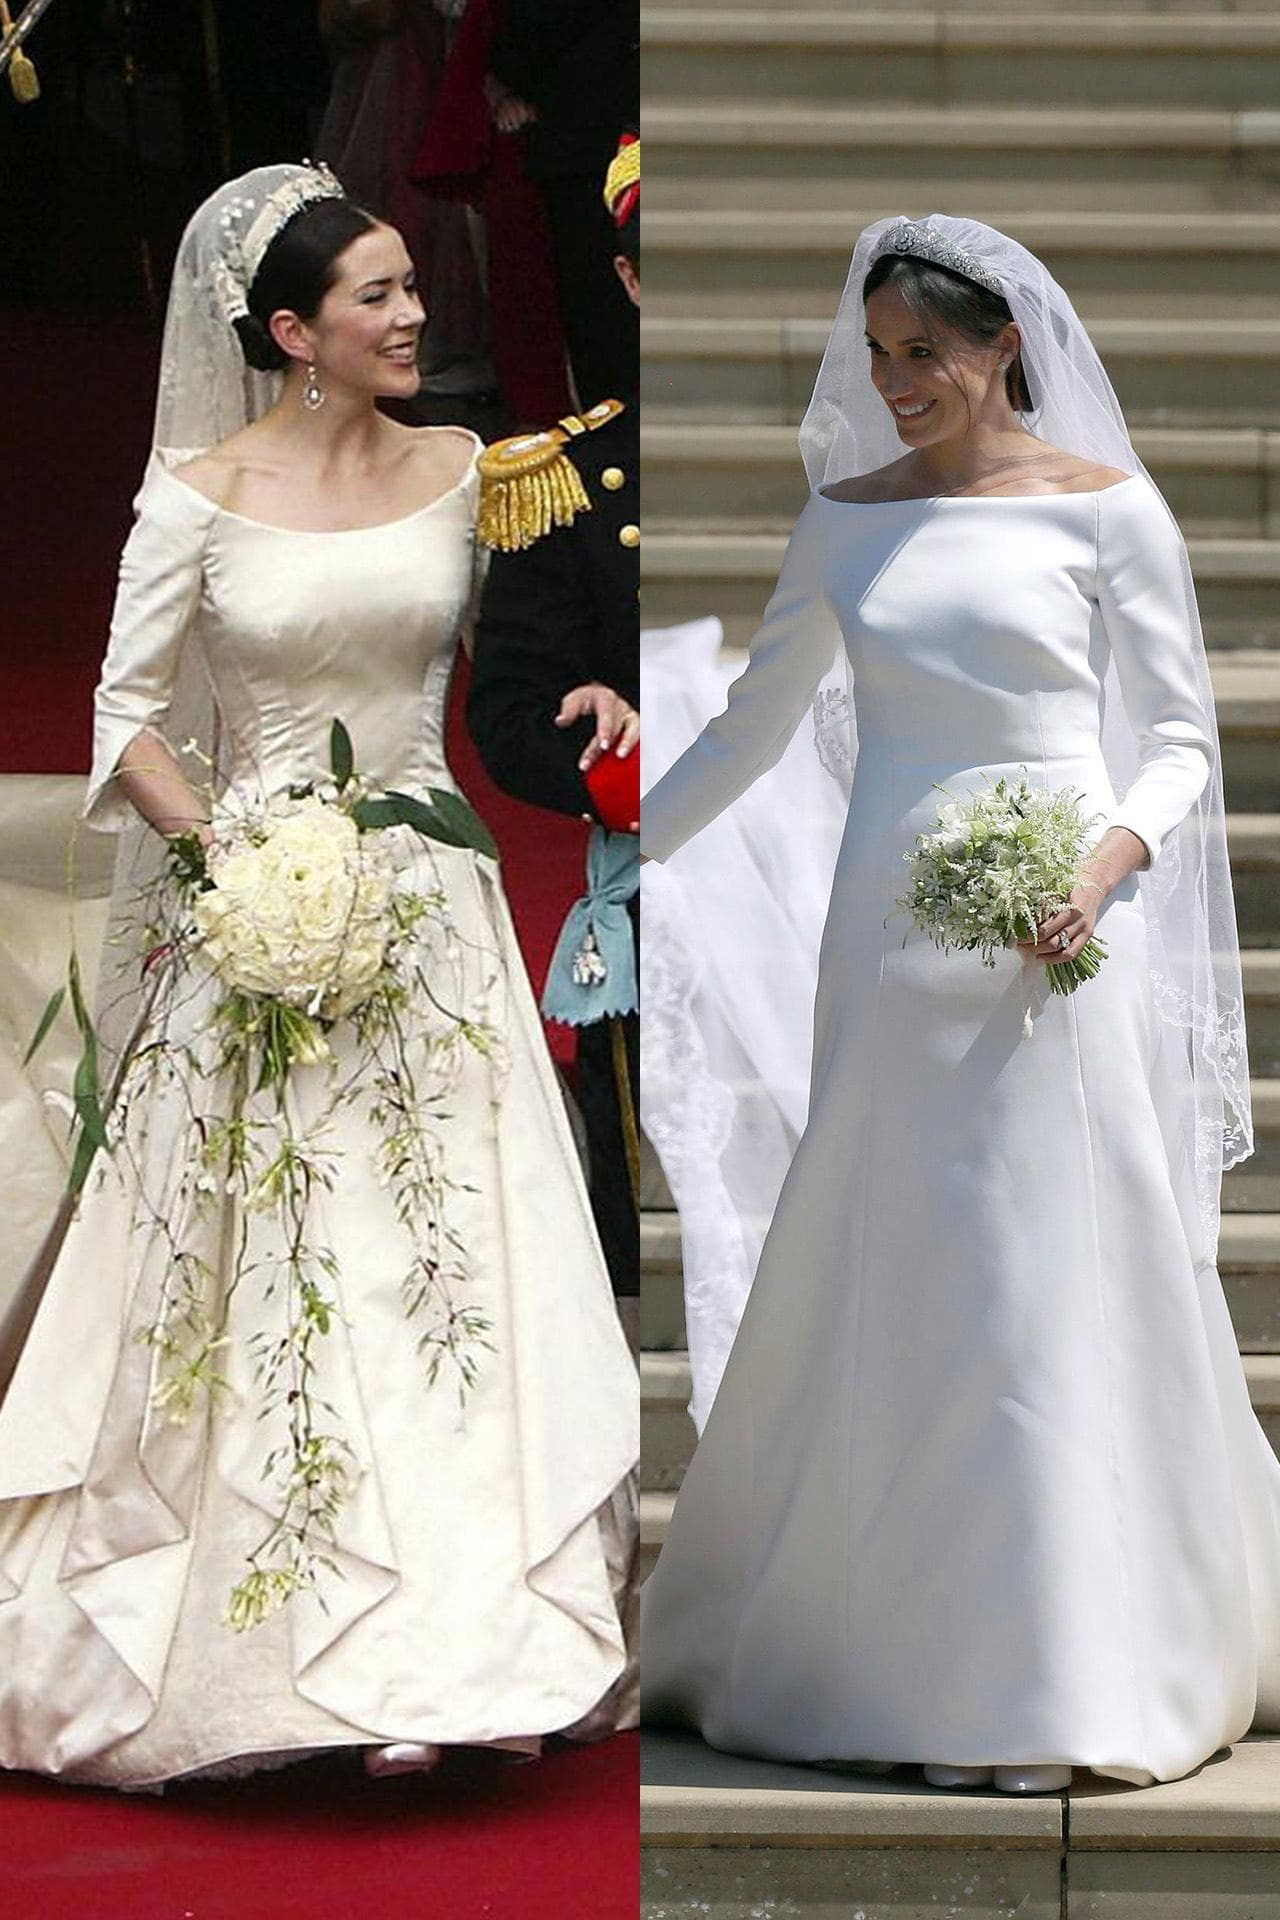 Was Meghan Markle Channelling Princess Mary With Her Wedding Dress Gorgeous Wedding Dress Wedding Dresses Dresses [ 1920 x 1280 Pixel ]